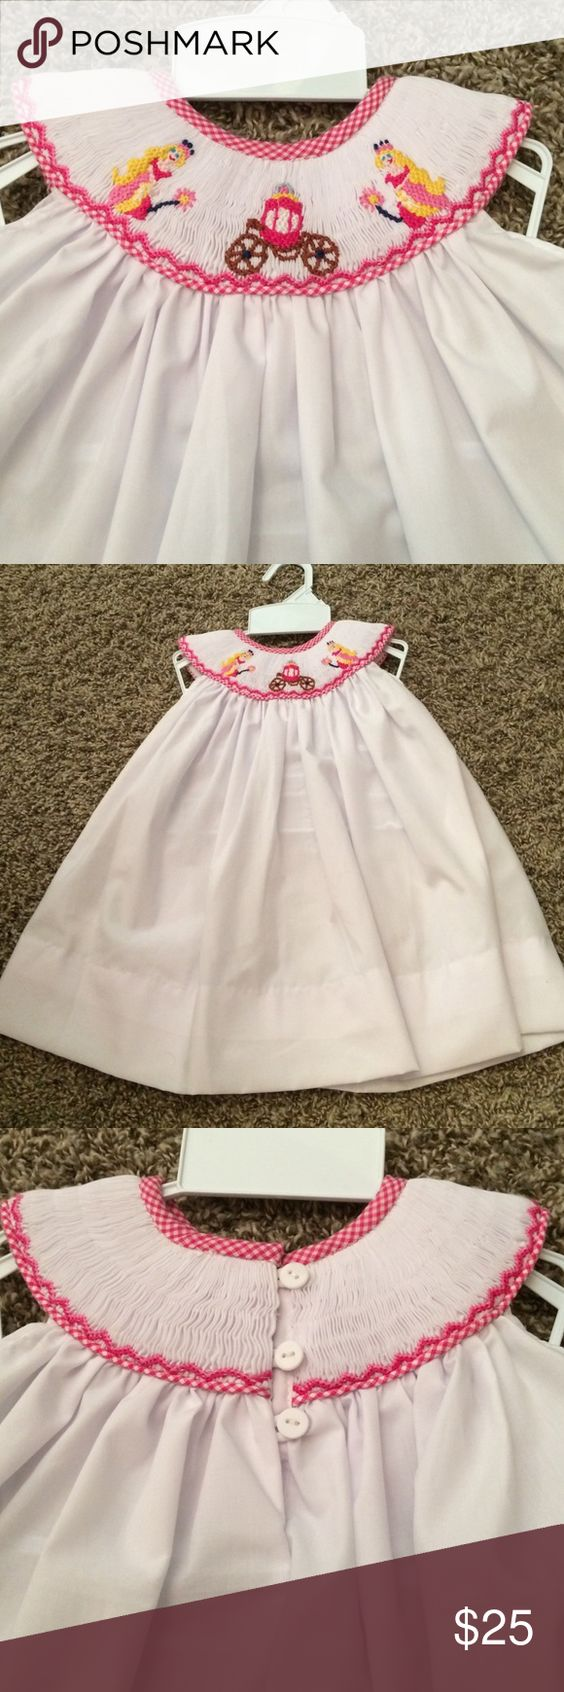 "👑Smocked princess carraige dress White dress, smocked around the neckline with princesses and a carraige and pink gingham around edges. Button up the back. Just THREE left! *12 💕3m-- chest 12.5"" stretched; length from scoop of neck 15.5"". 💕6m-- chest 13"" stretched; length fromscoop of neck 16"". No offers please due to our items already being priced lower than regular store price and Poshmark fees. Select buy now or add to bundle :) NOLA Smocked Dresses Casual"